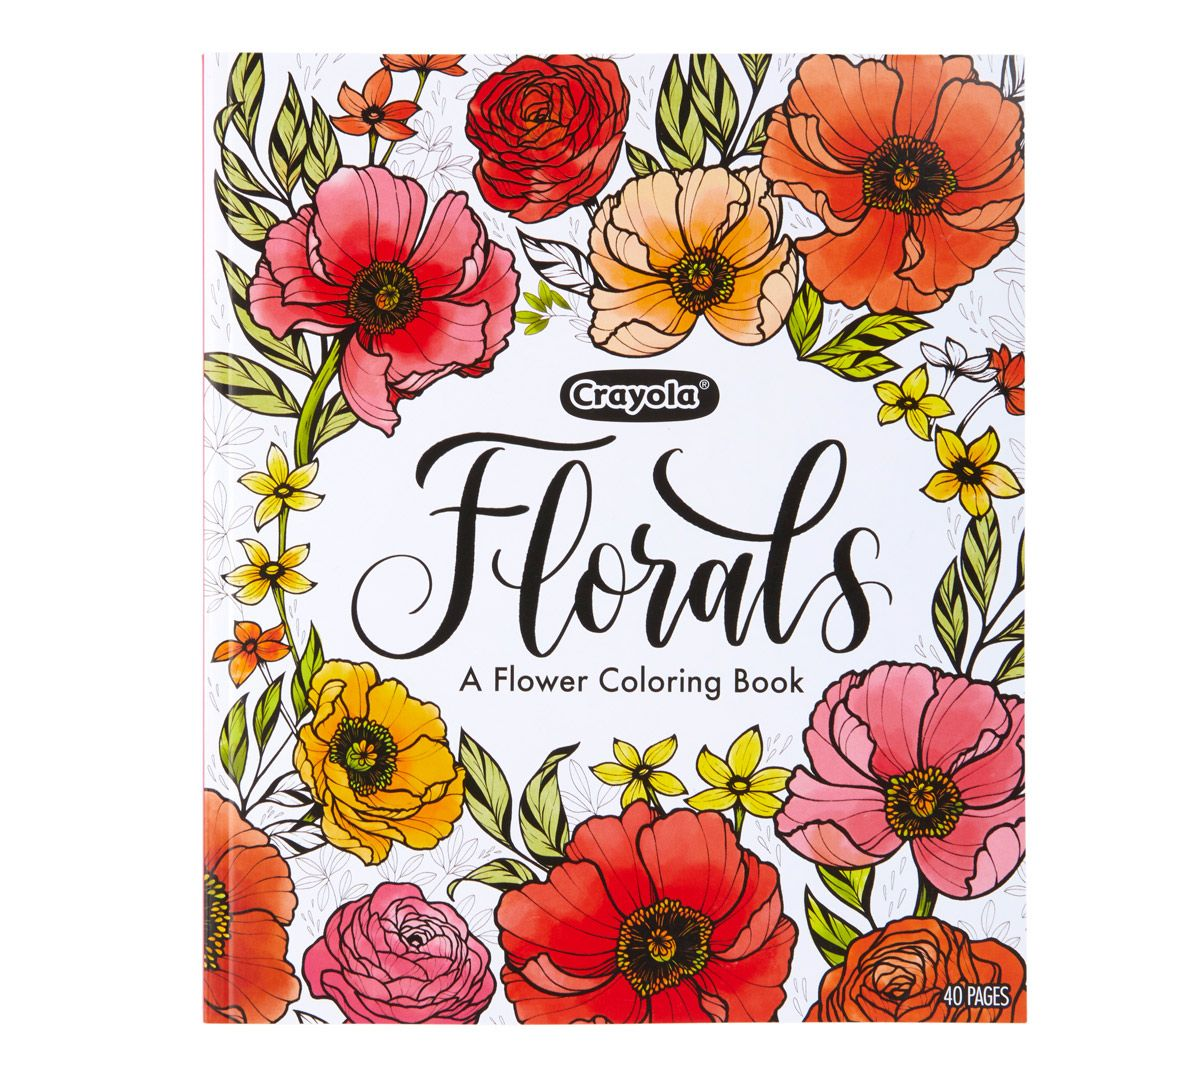 Flower Coloring Book Floral Coloring Pages Crayola Com Crayola In 2020 Coloring Books Flower Coloring Pages Coloring Pages